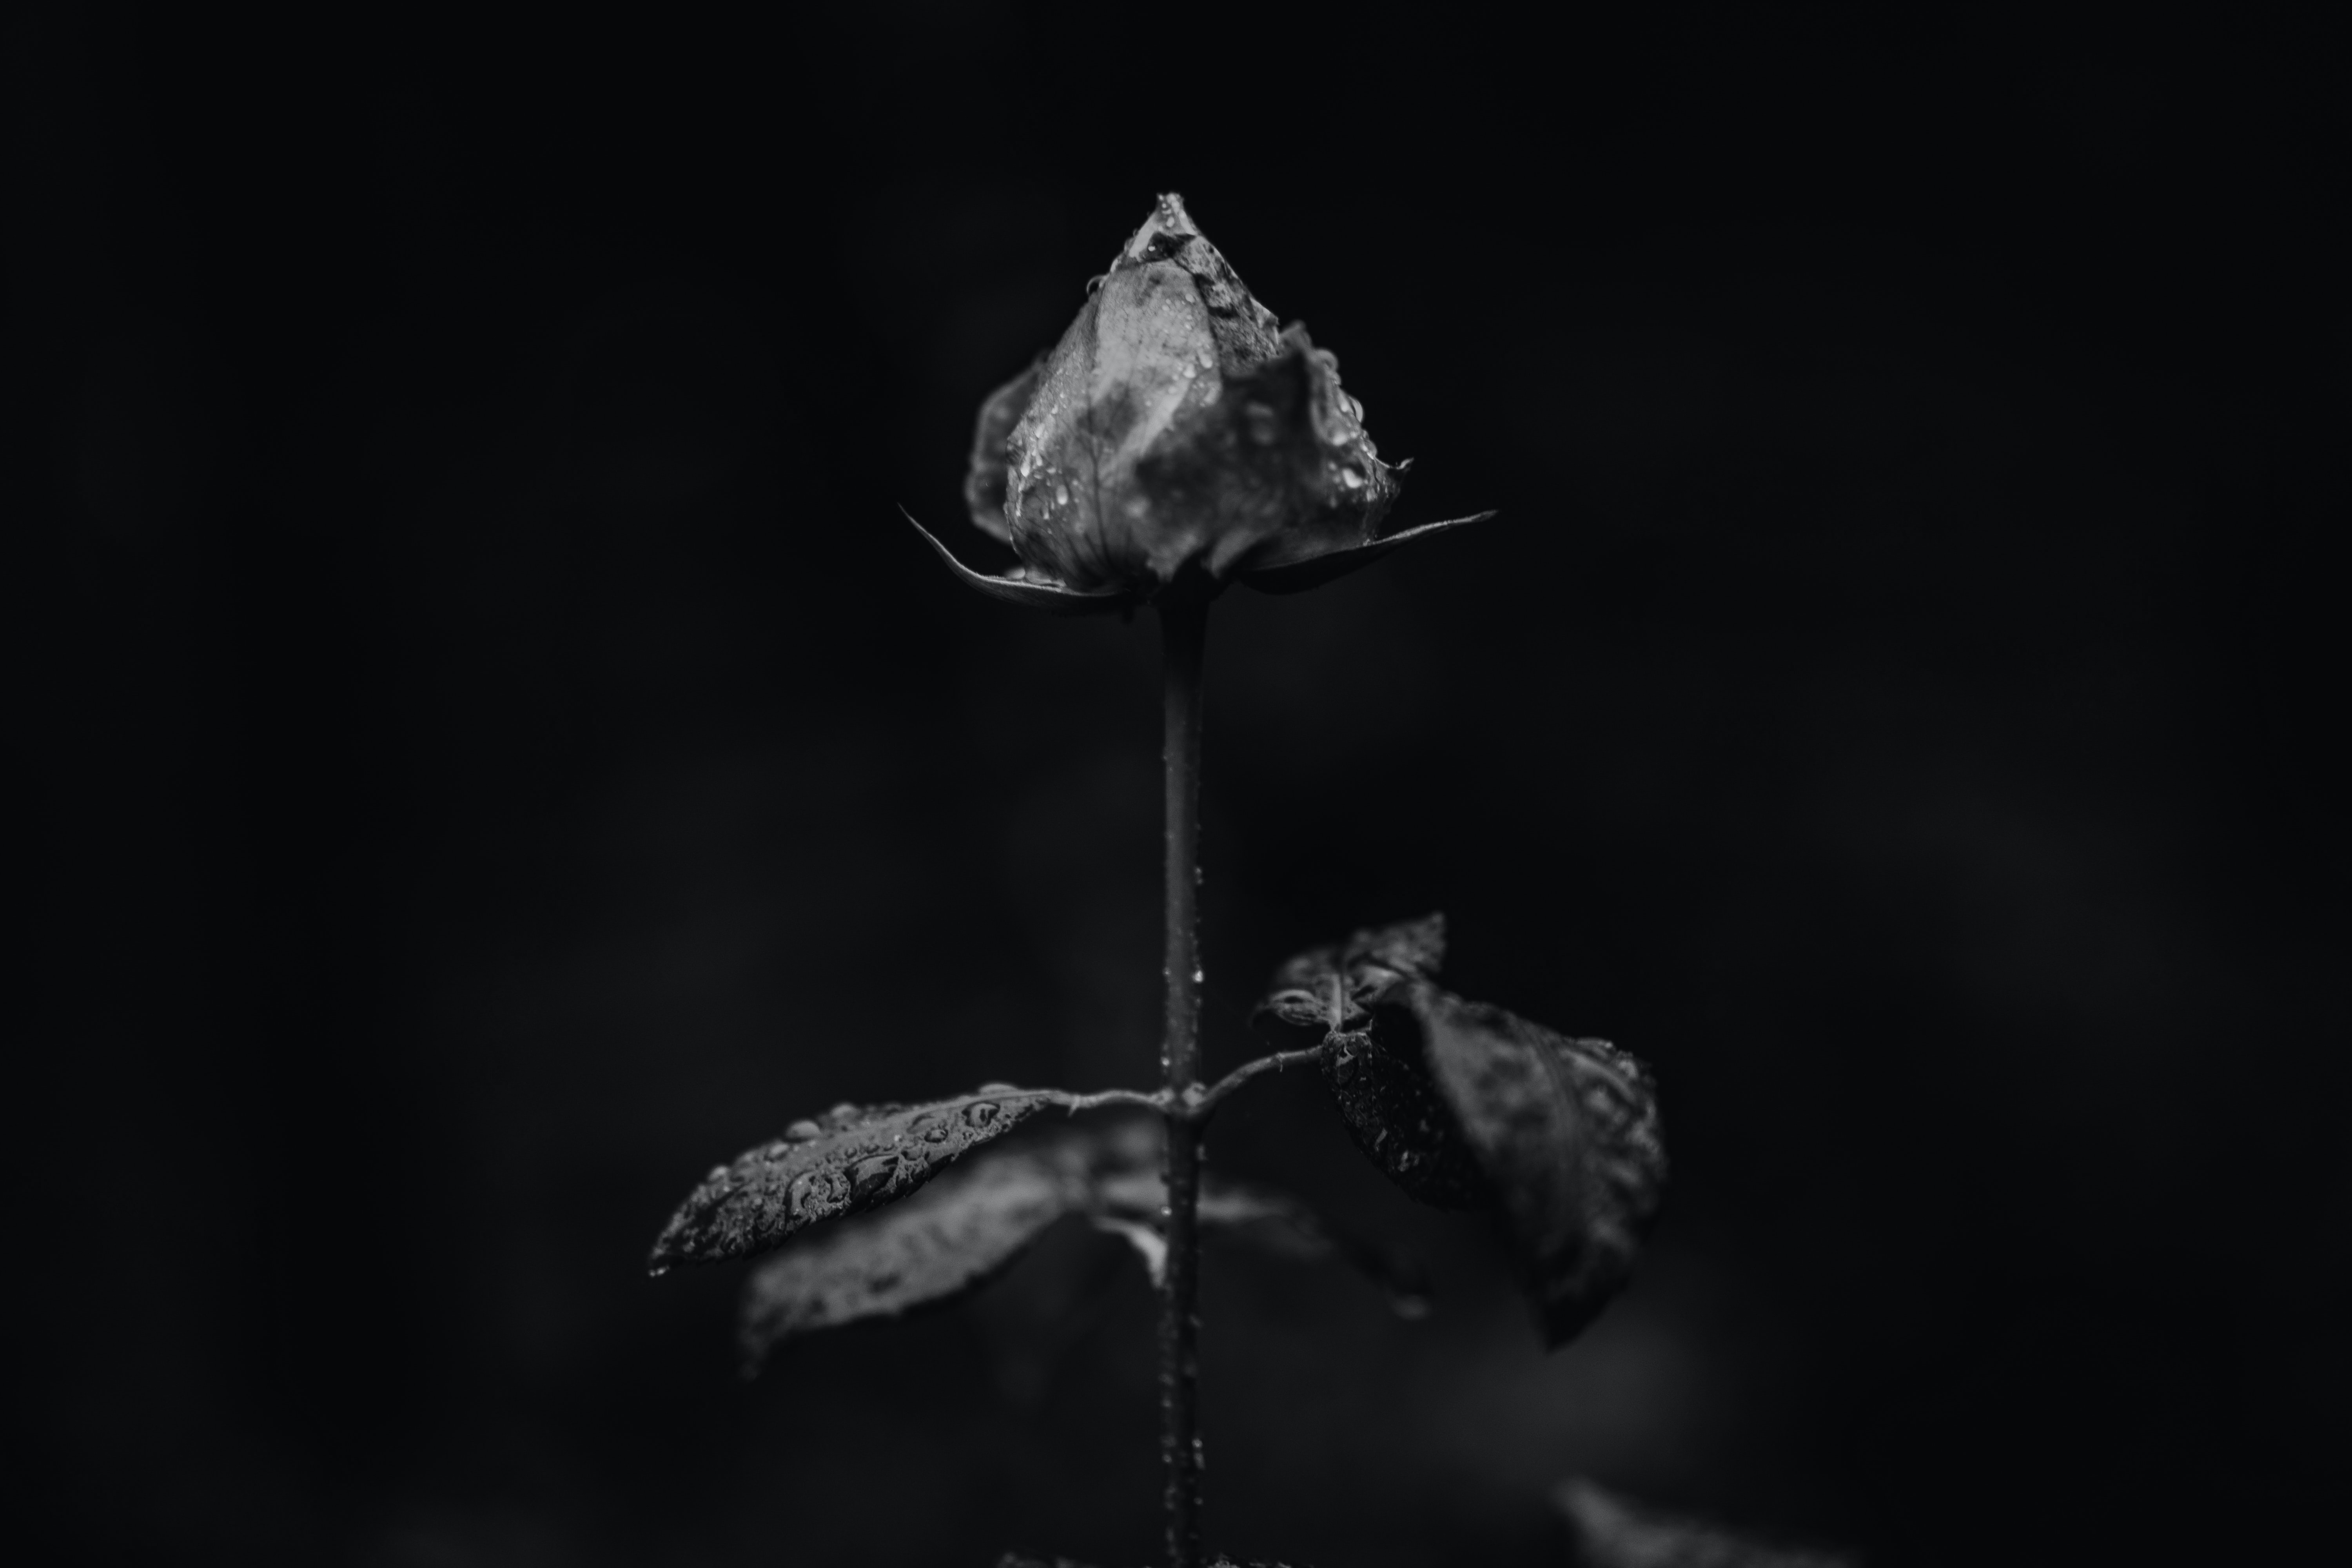 grayscaled photo of flower